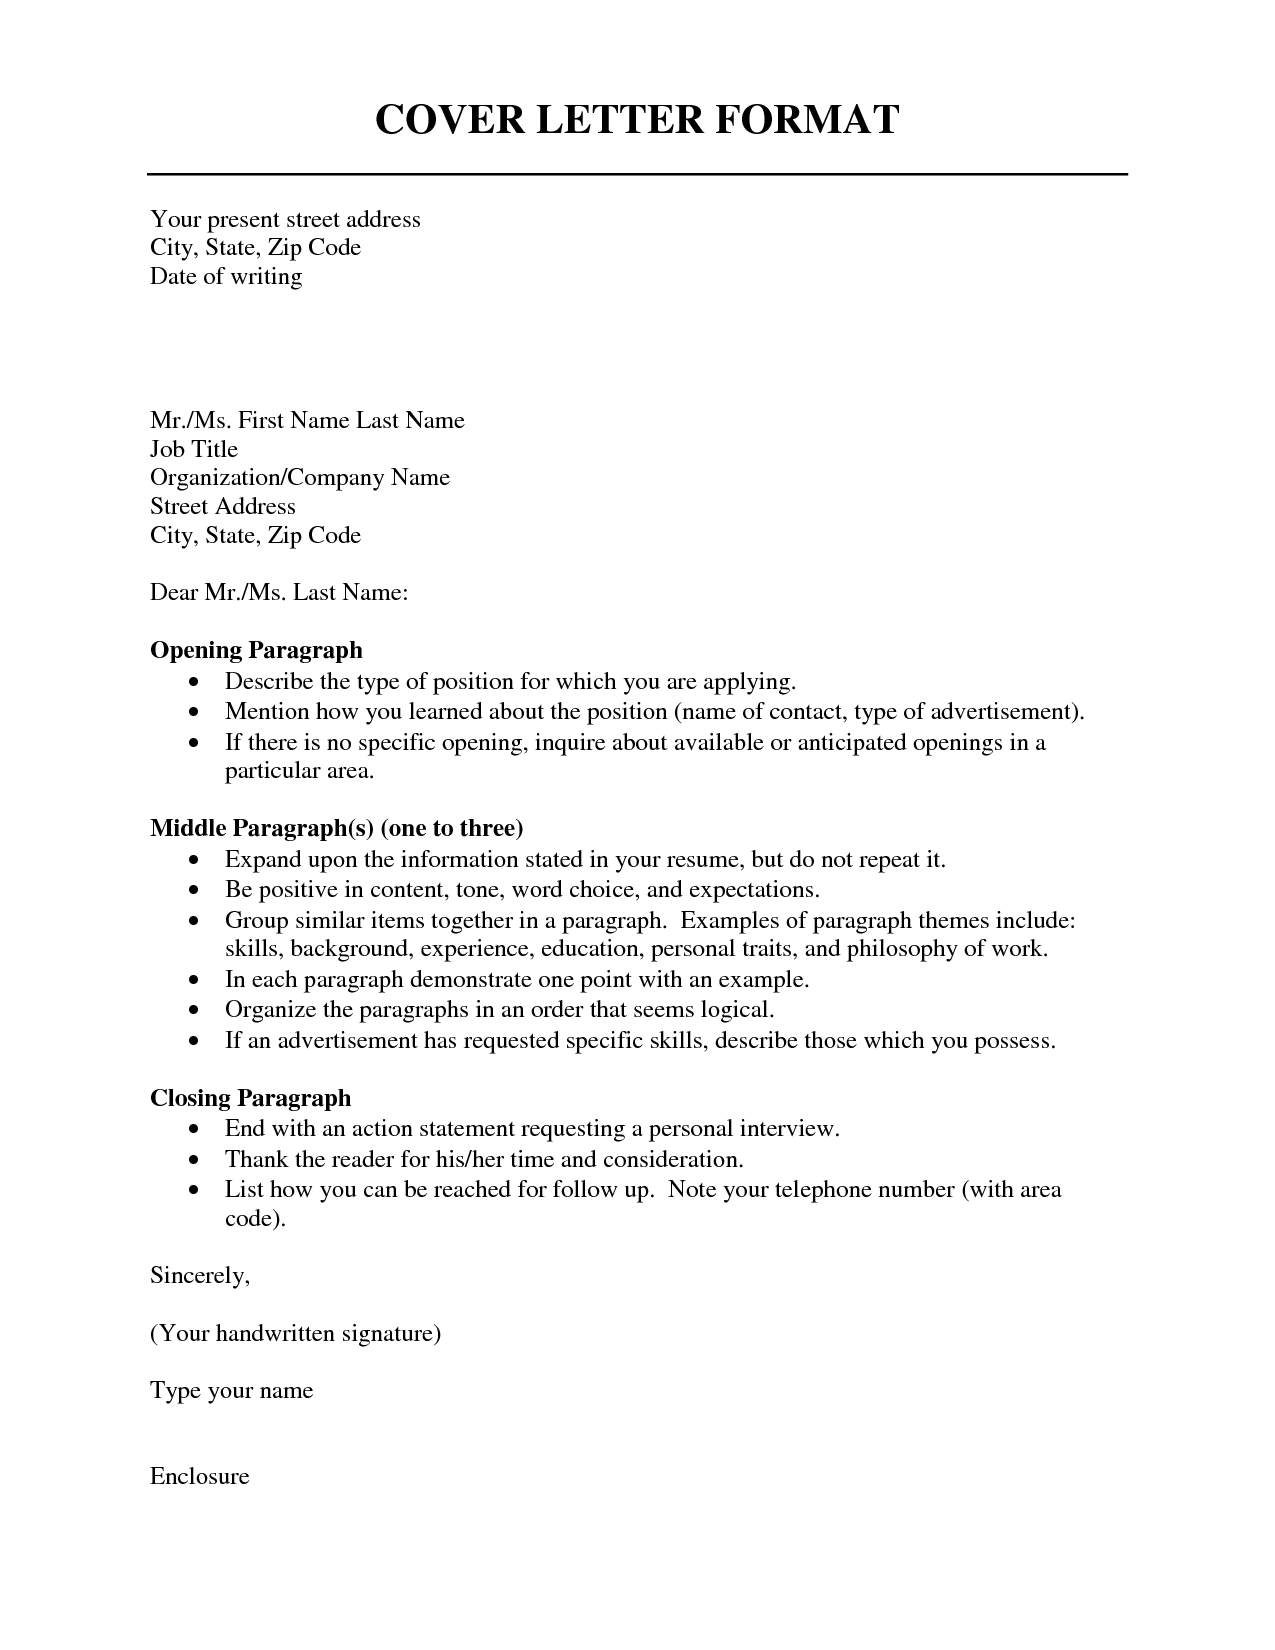 how to format a covering letter